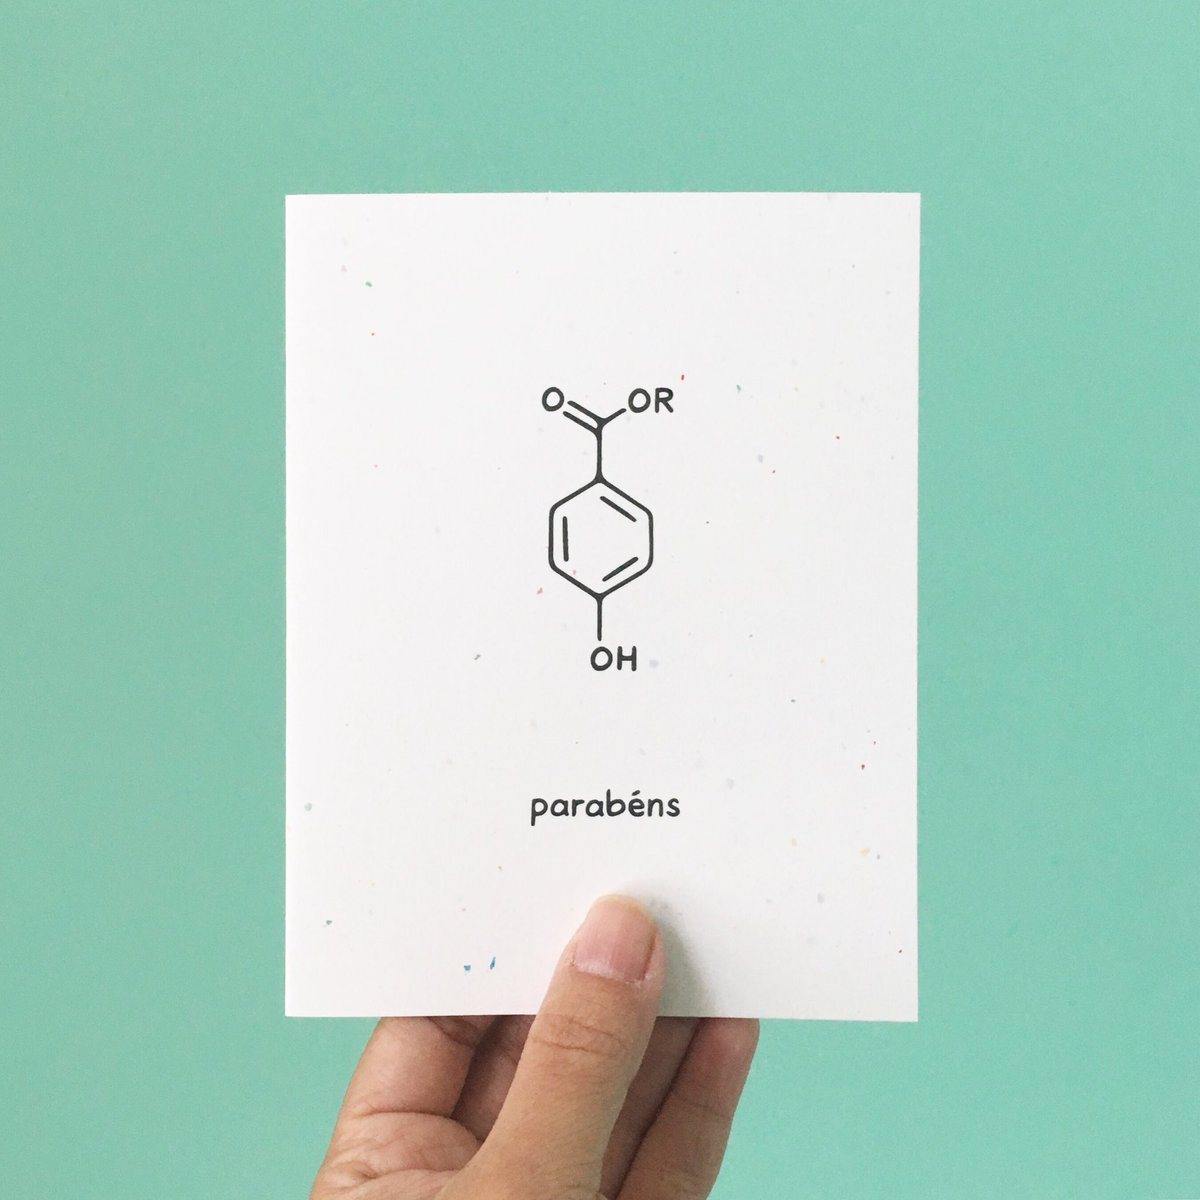 The Chemist Tree V Twitter Learnt A New Word Recently Parabens It Means Congratulations In Portuguese Also Happens To Be A Molecule Fitting For The Mcmasteru Science Convocation Today